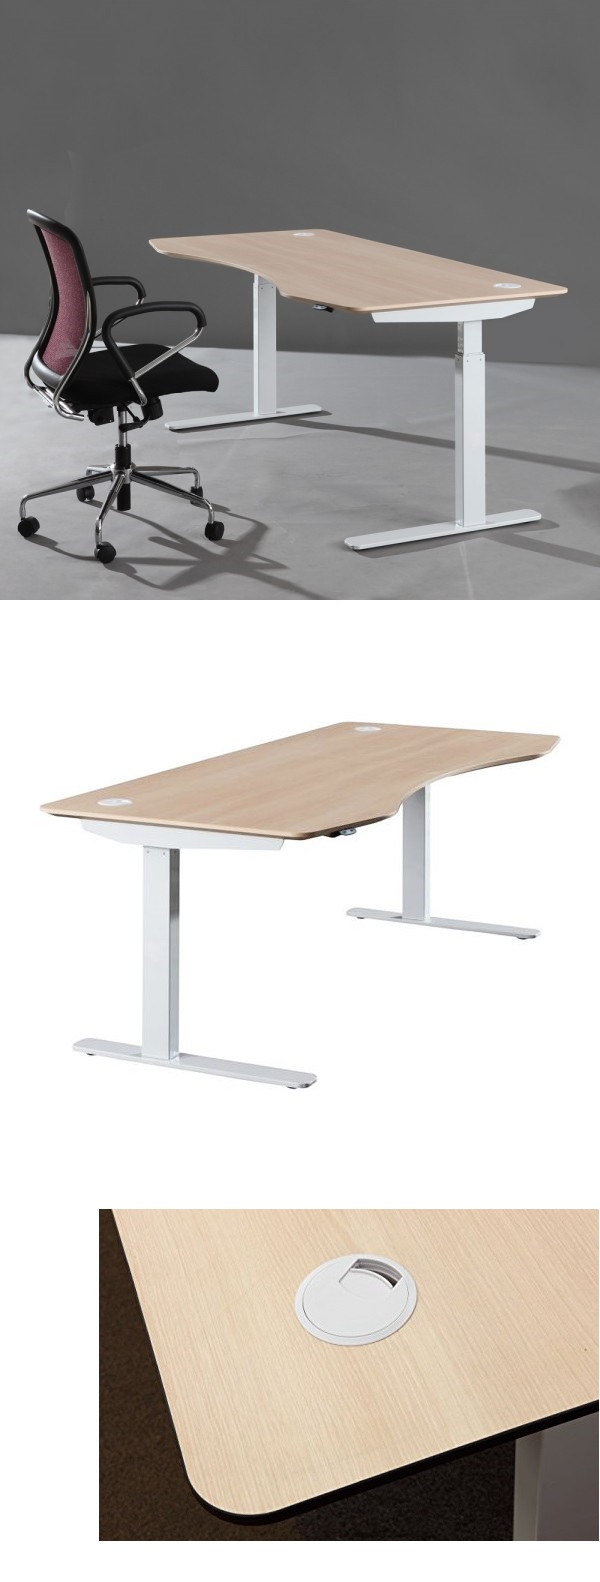 ApexDesk Series 71-in Wide Adjustable Standing Desk - Light Oak